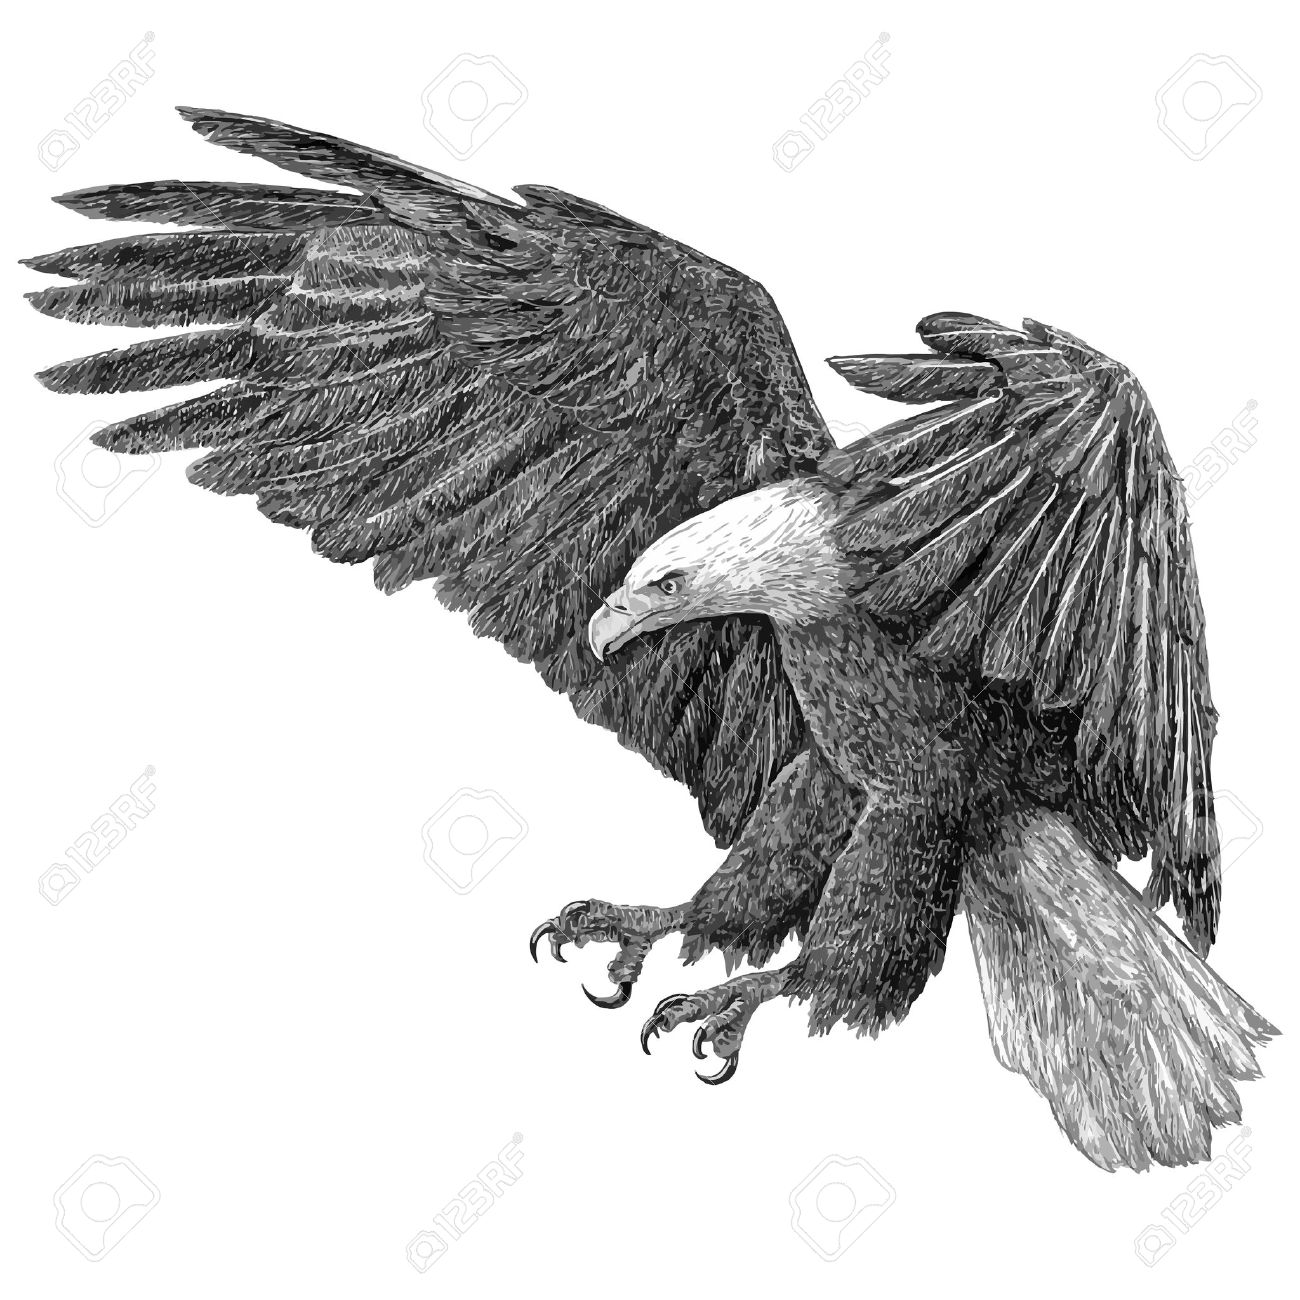 bald eagle swoop draw on white background illustration vector